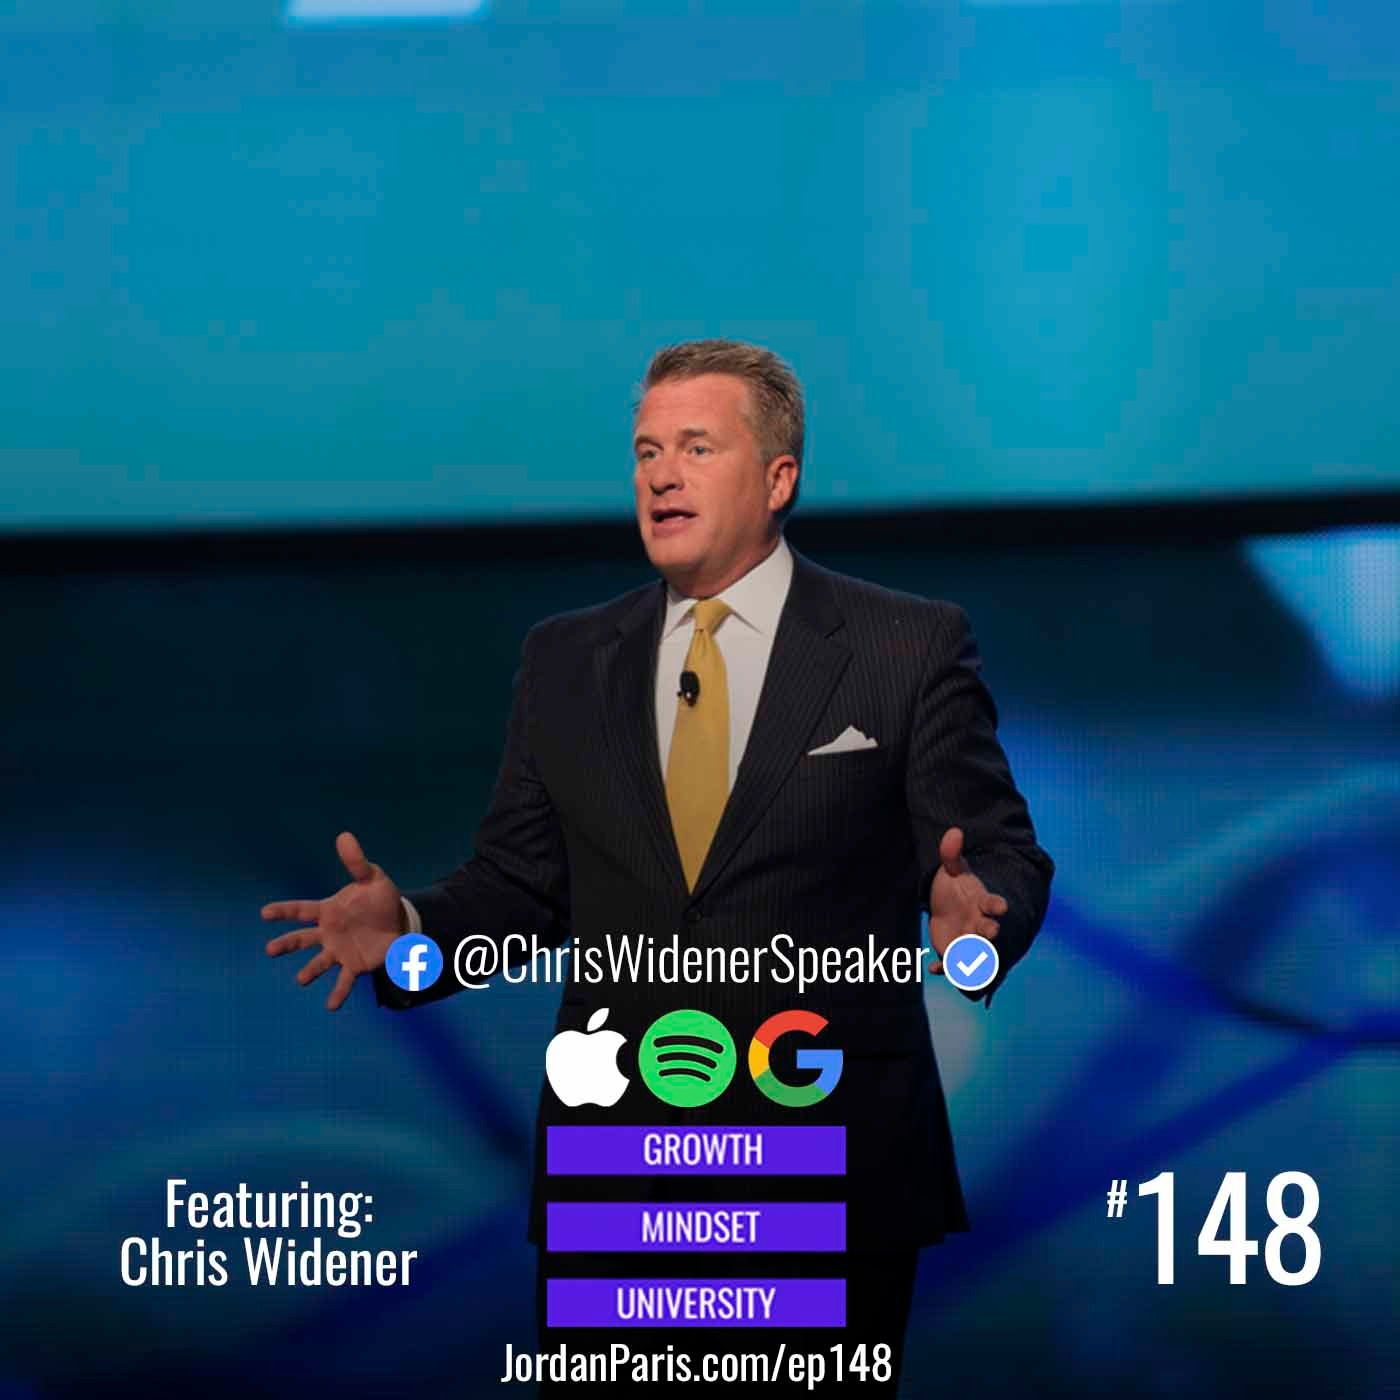 Become Aware of Your Blind Spots with Chris Widener